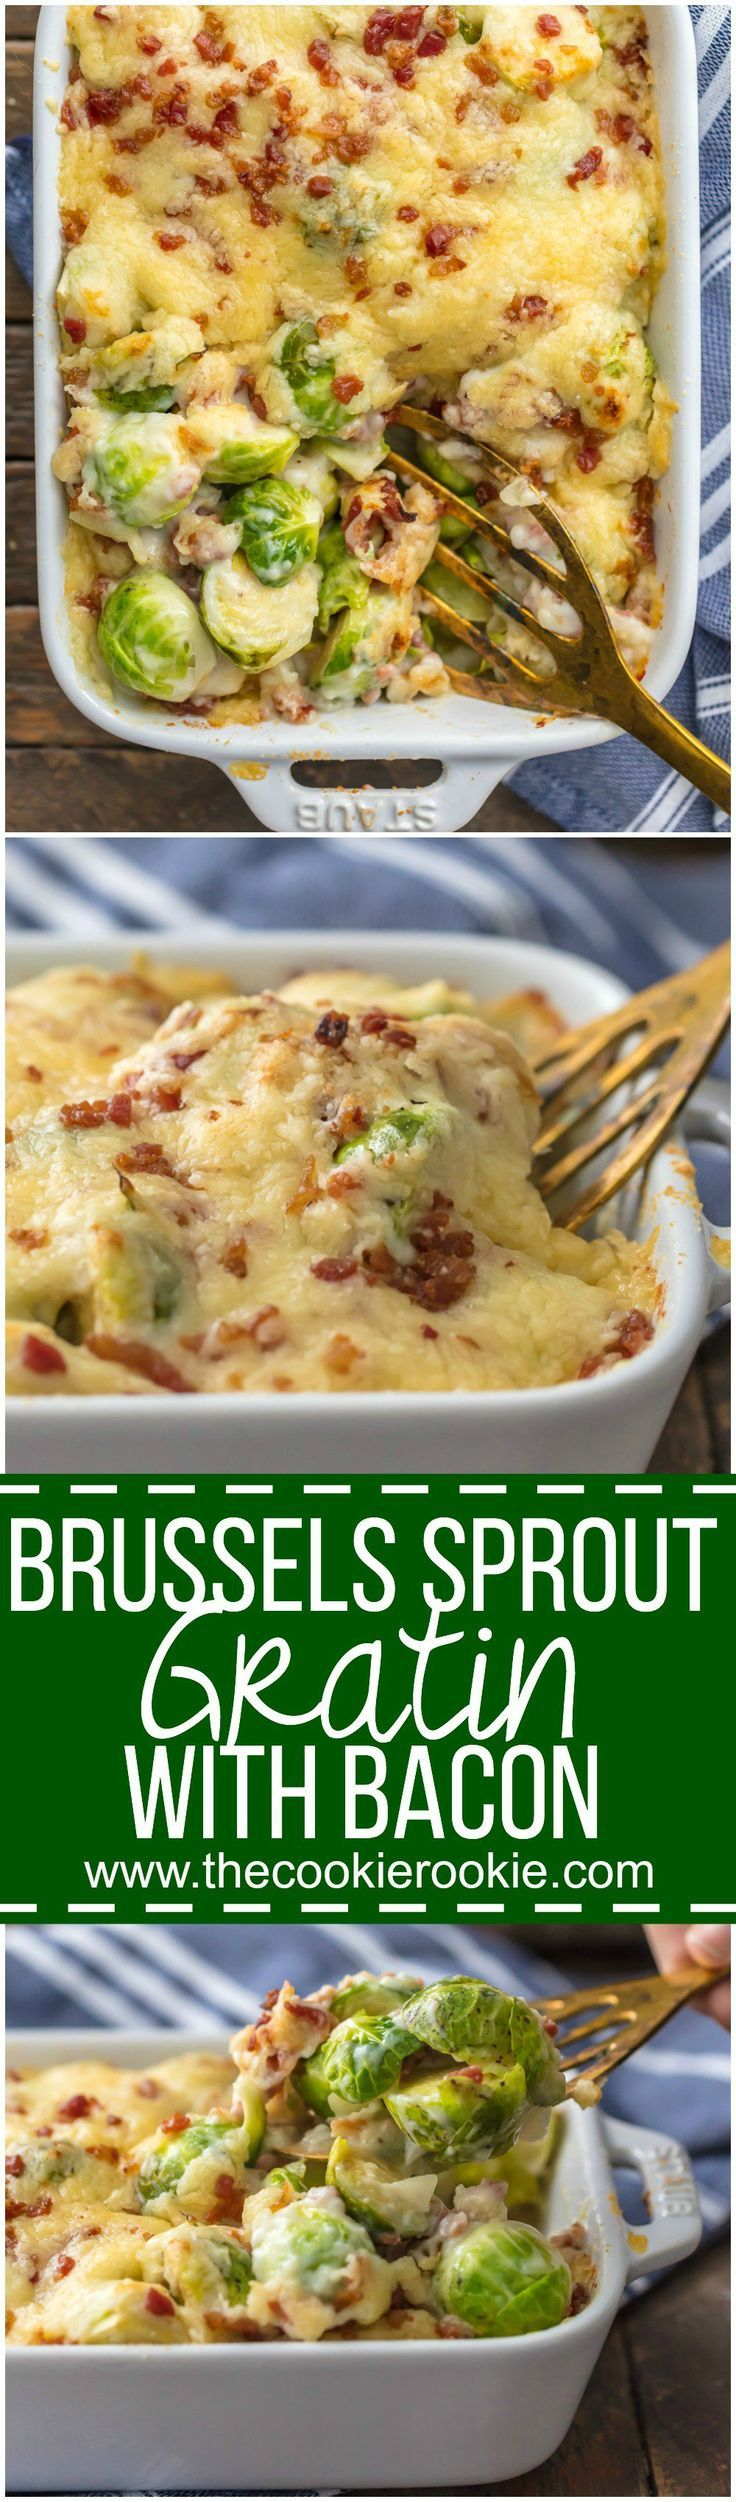 brussels sprout gratin with bacon brussel sprouts au gratin holiday ...